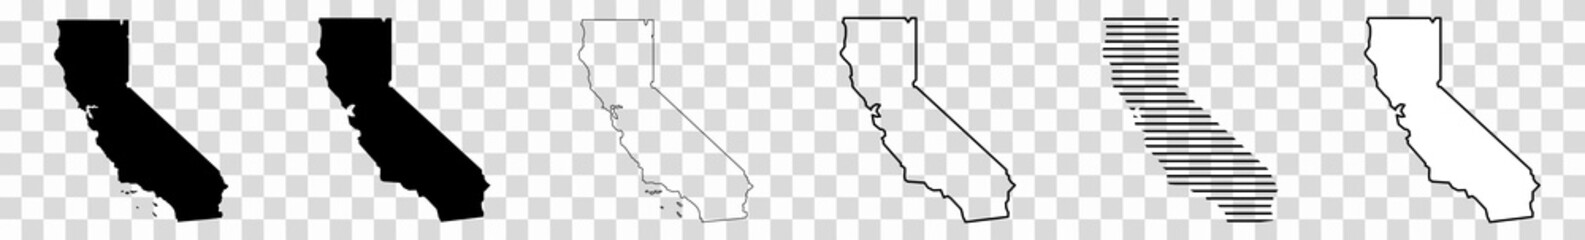 California Map Black | State Border | United States | US America | Transparent Isolated | Variations Fotomurales